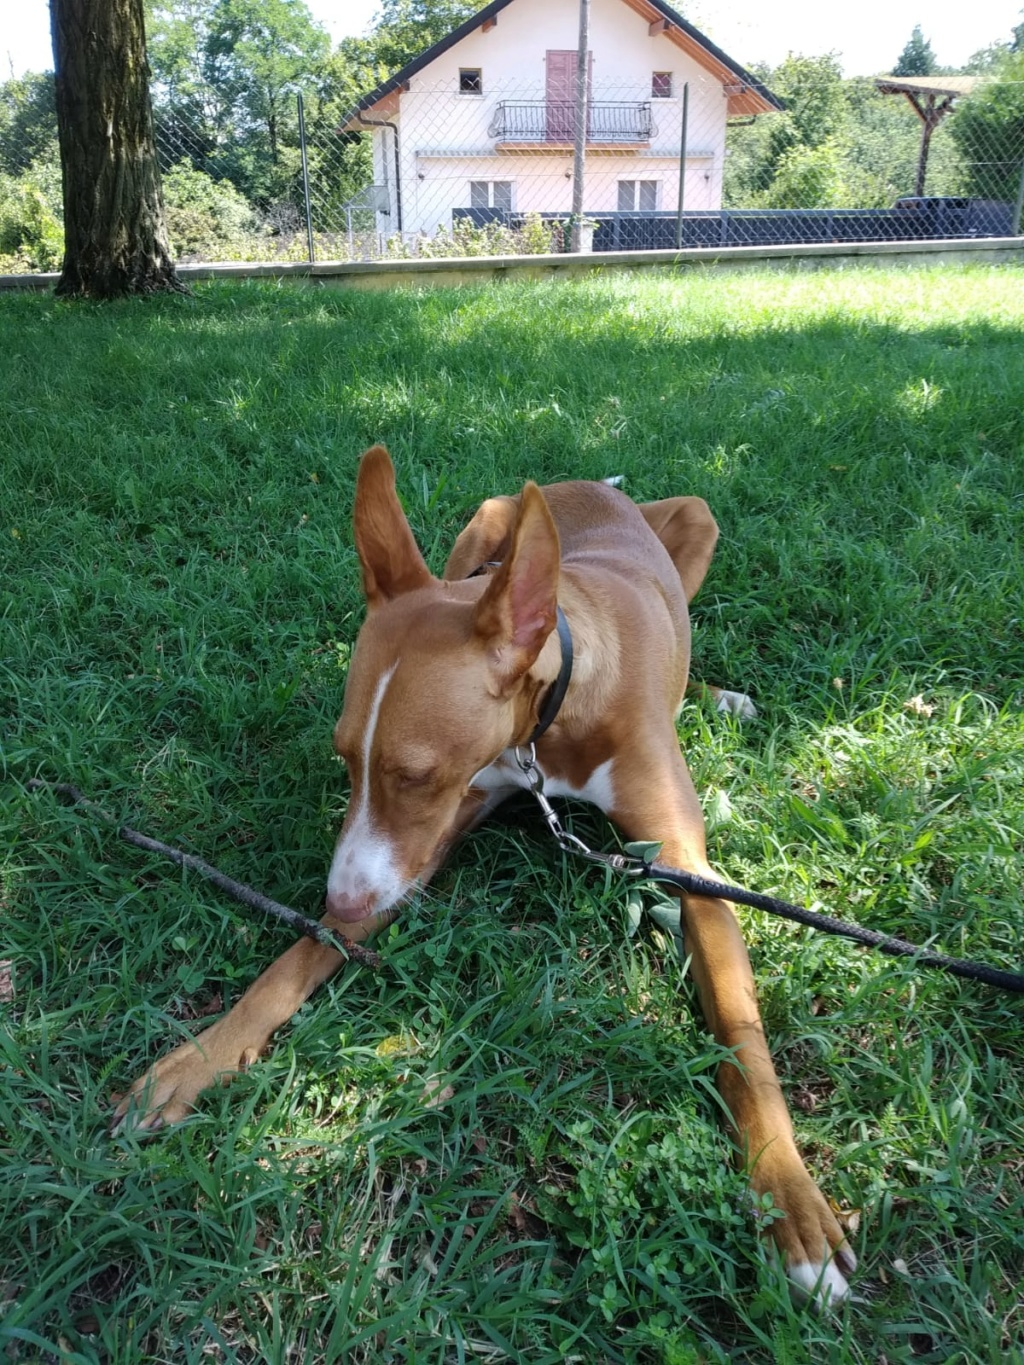 NEOO - X Podenco - Dans le 74 Img-2169